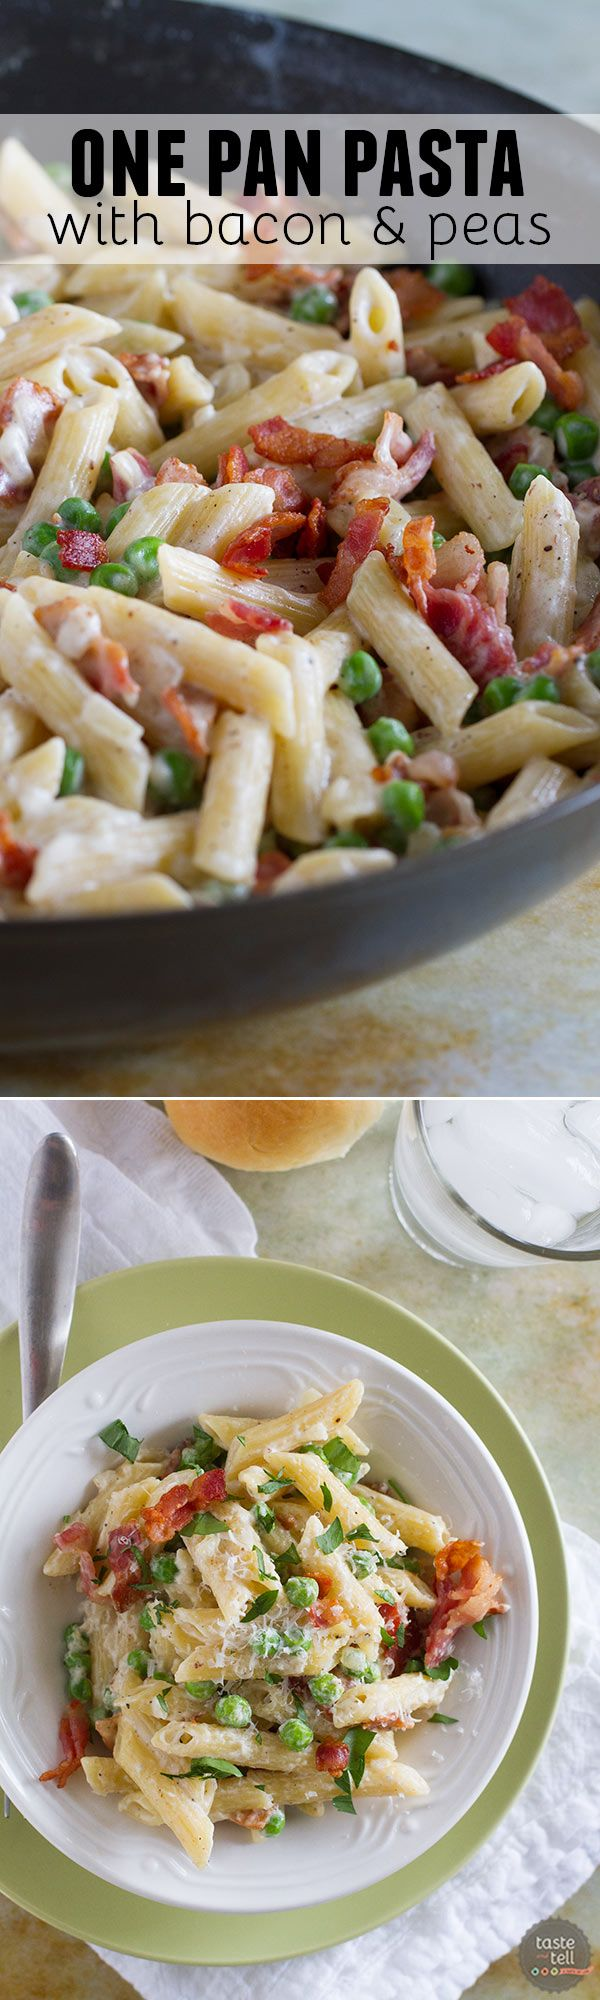 Food and Drink: One Pan Pasta with Bacon and Peas - Taste and Tell...